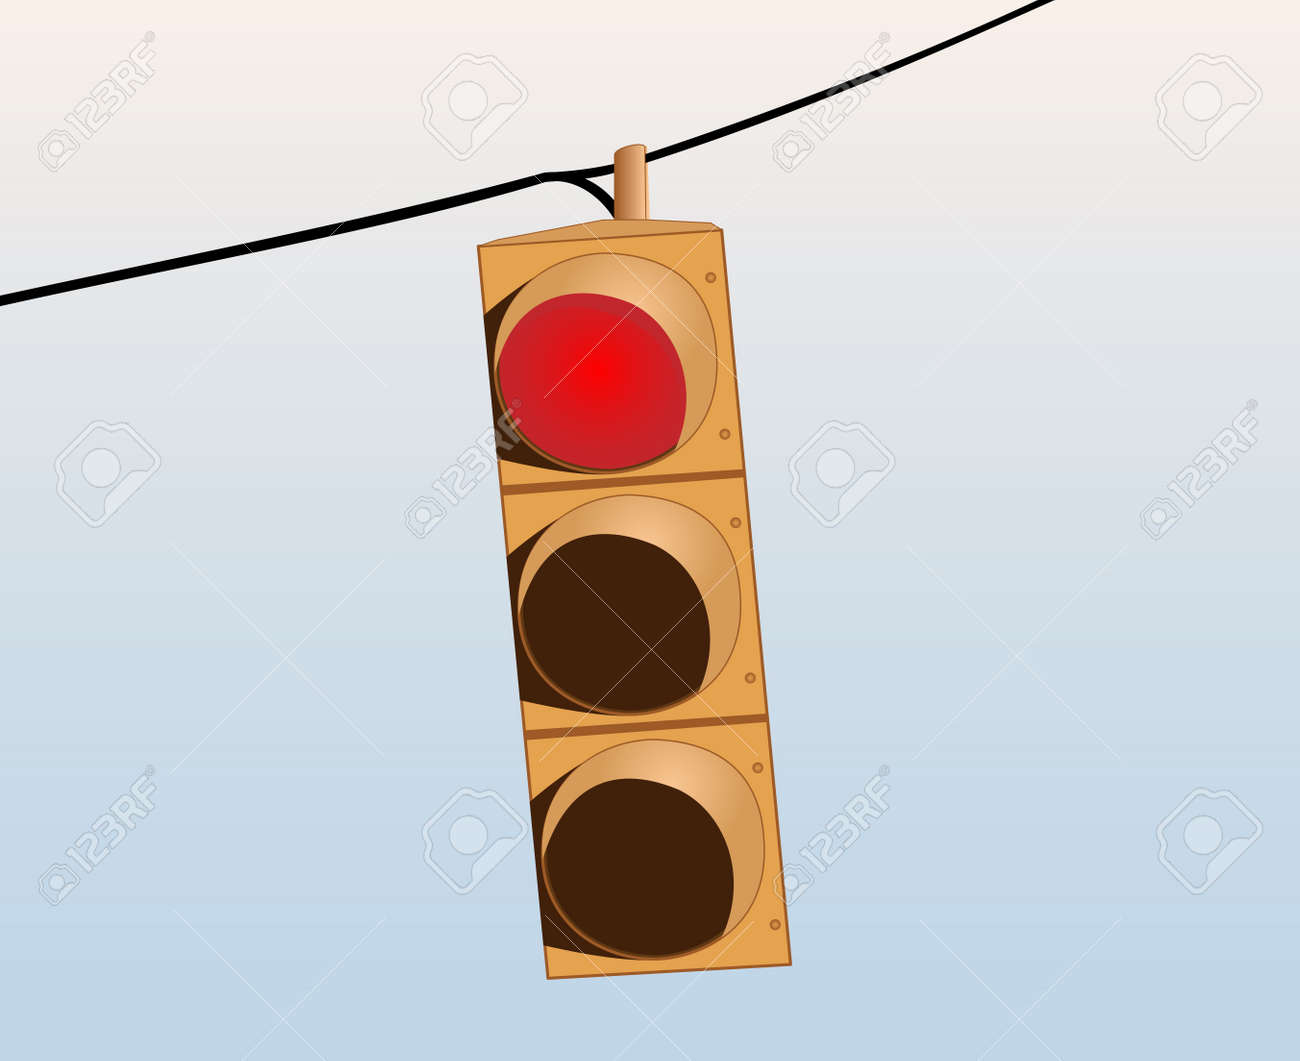 Illustration of a red traffic signal on the wire against the sky Stock Vector - 14154352